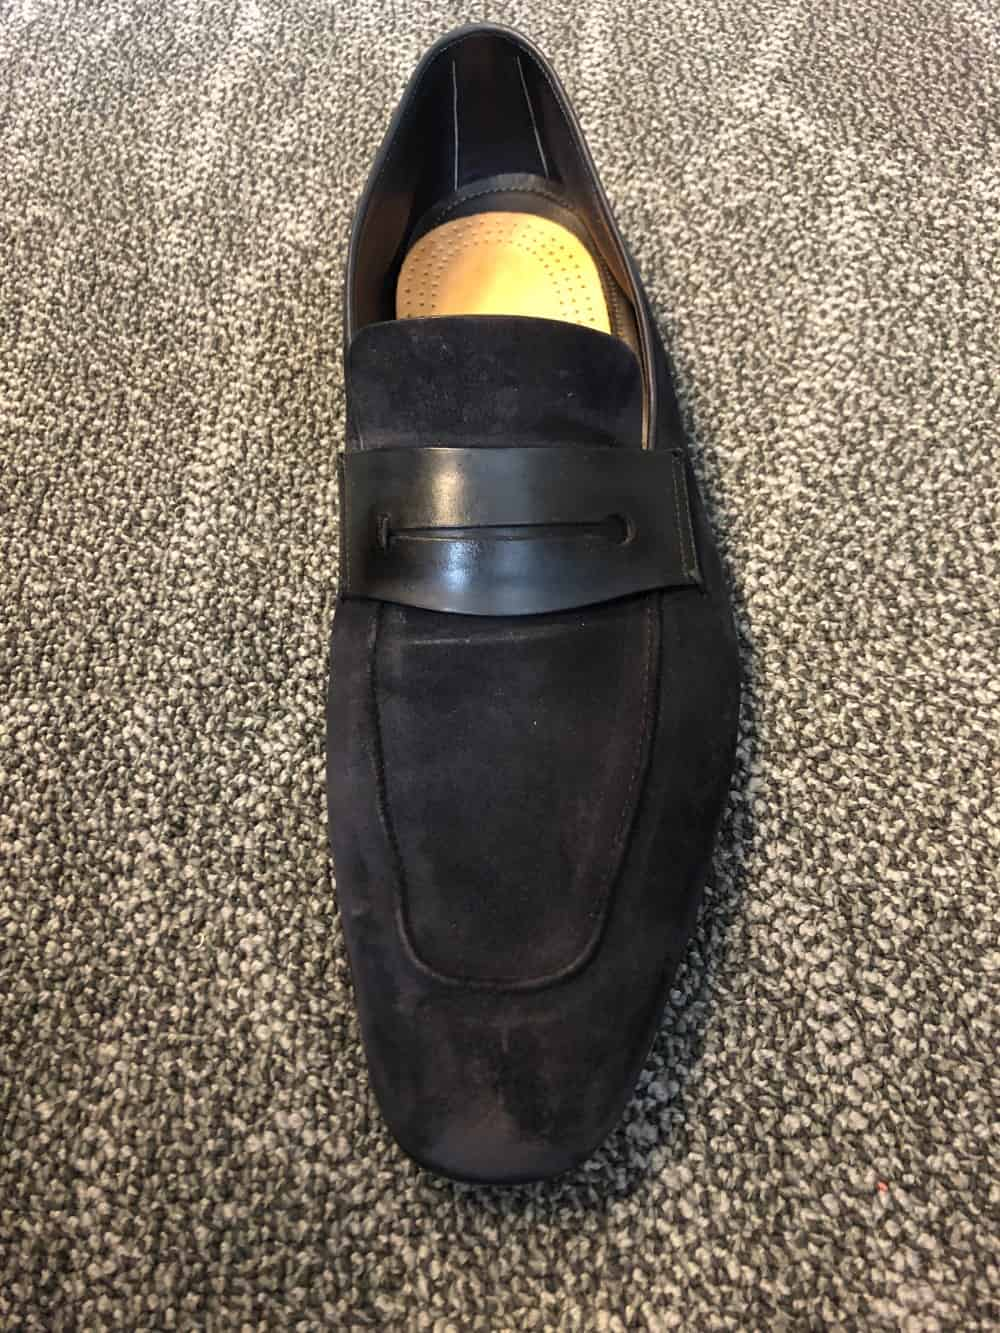 Front view of Zegna A'sola suede loafer